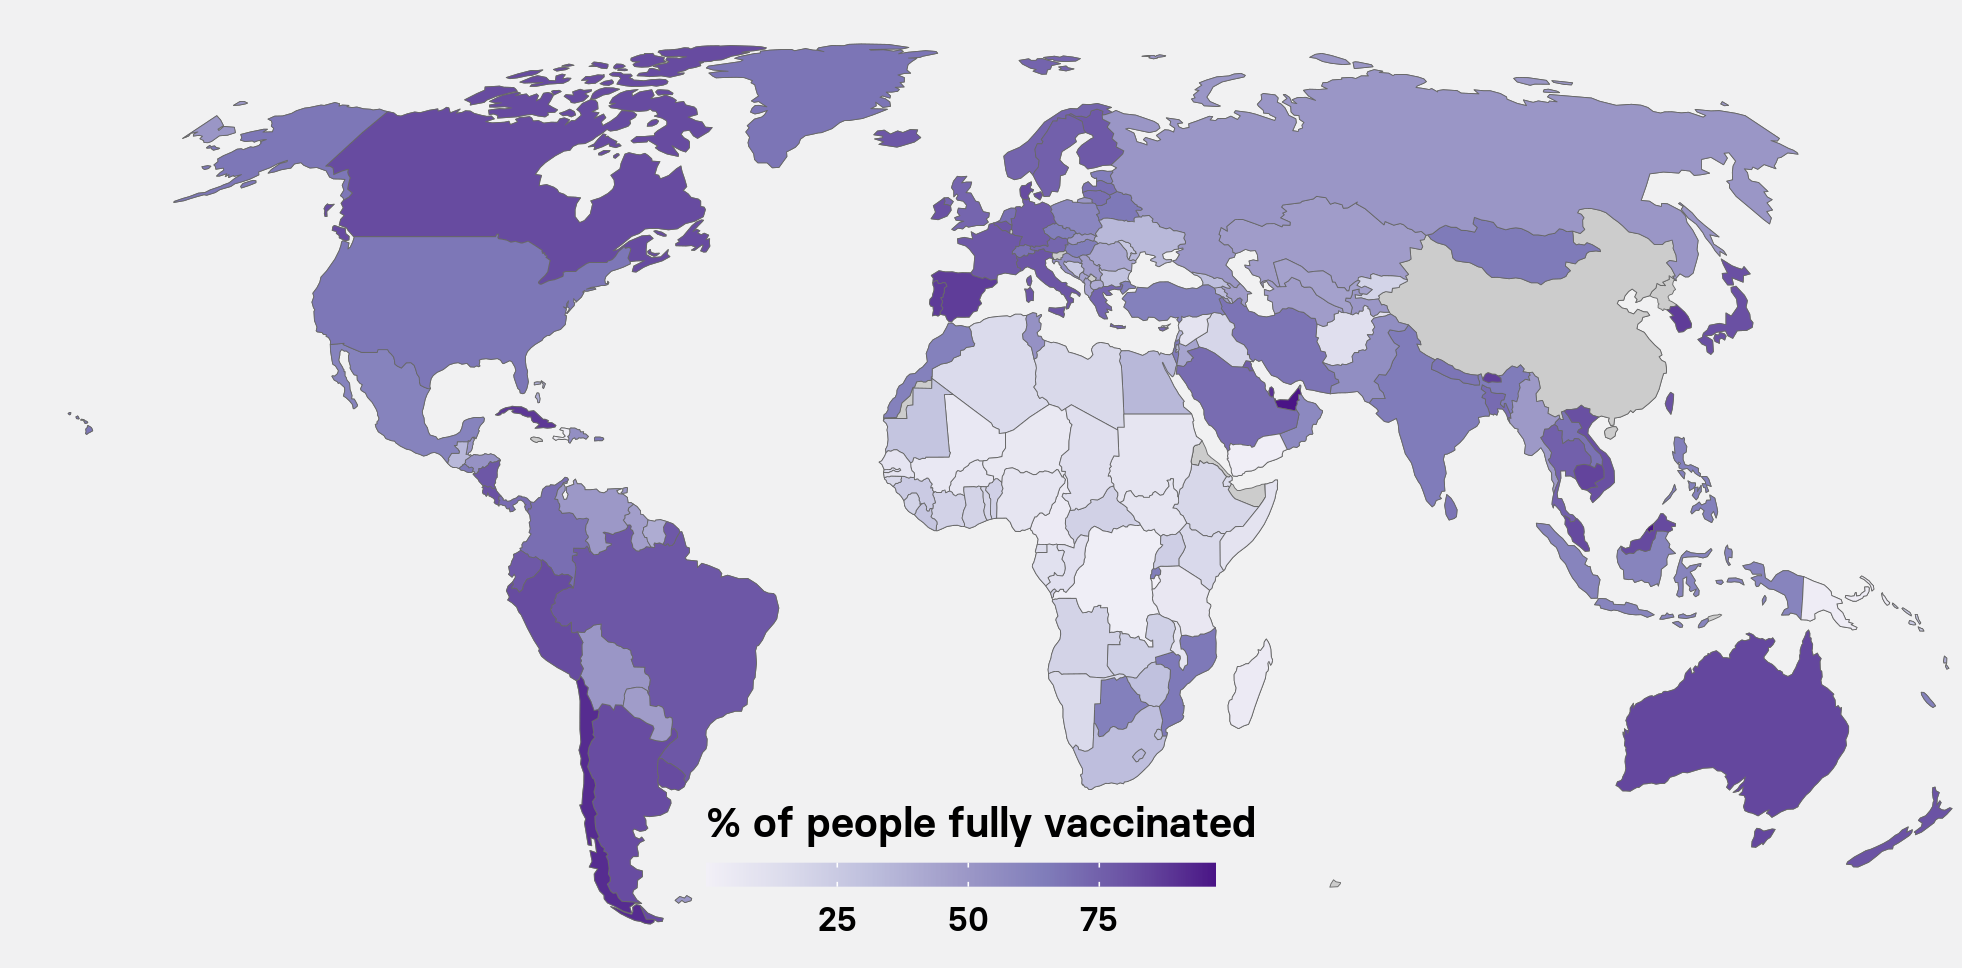 Vaccination rate per 100 people worldwide